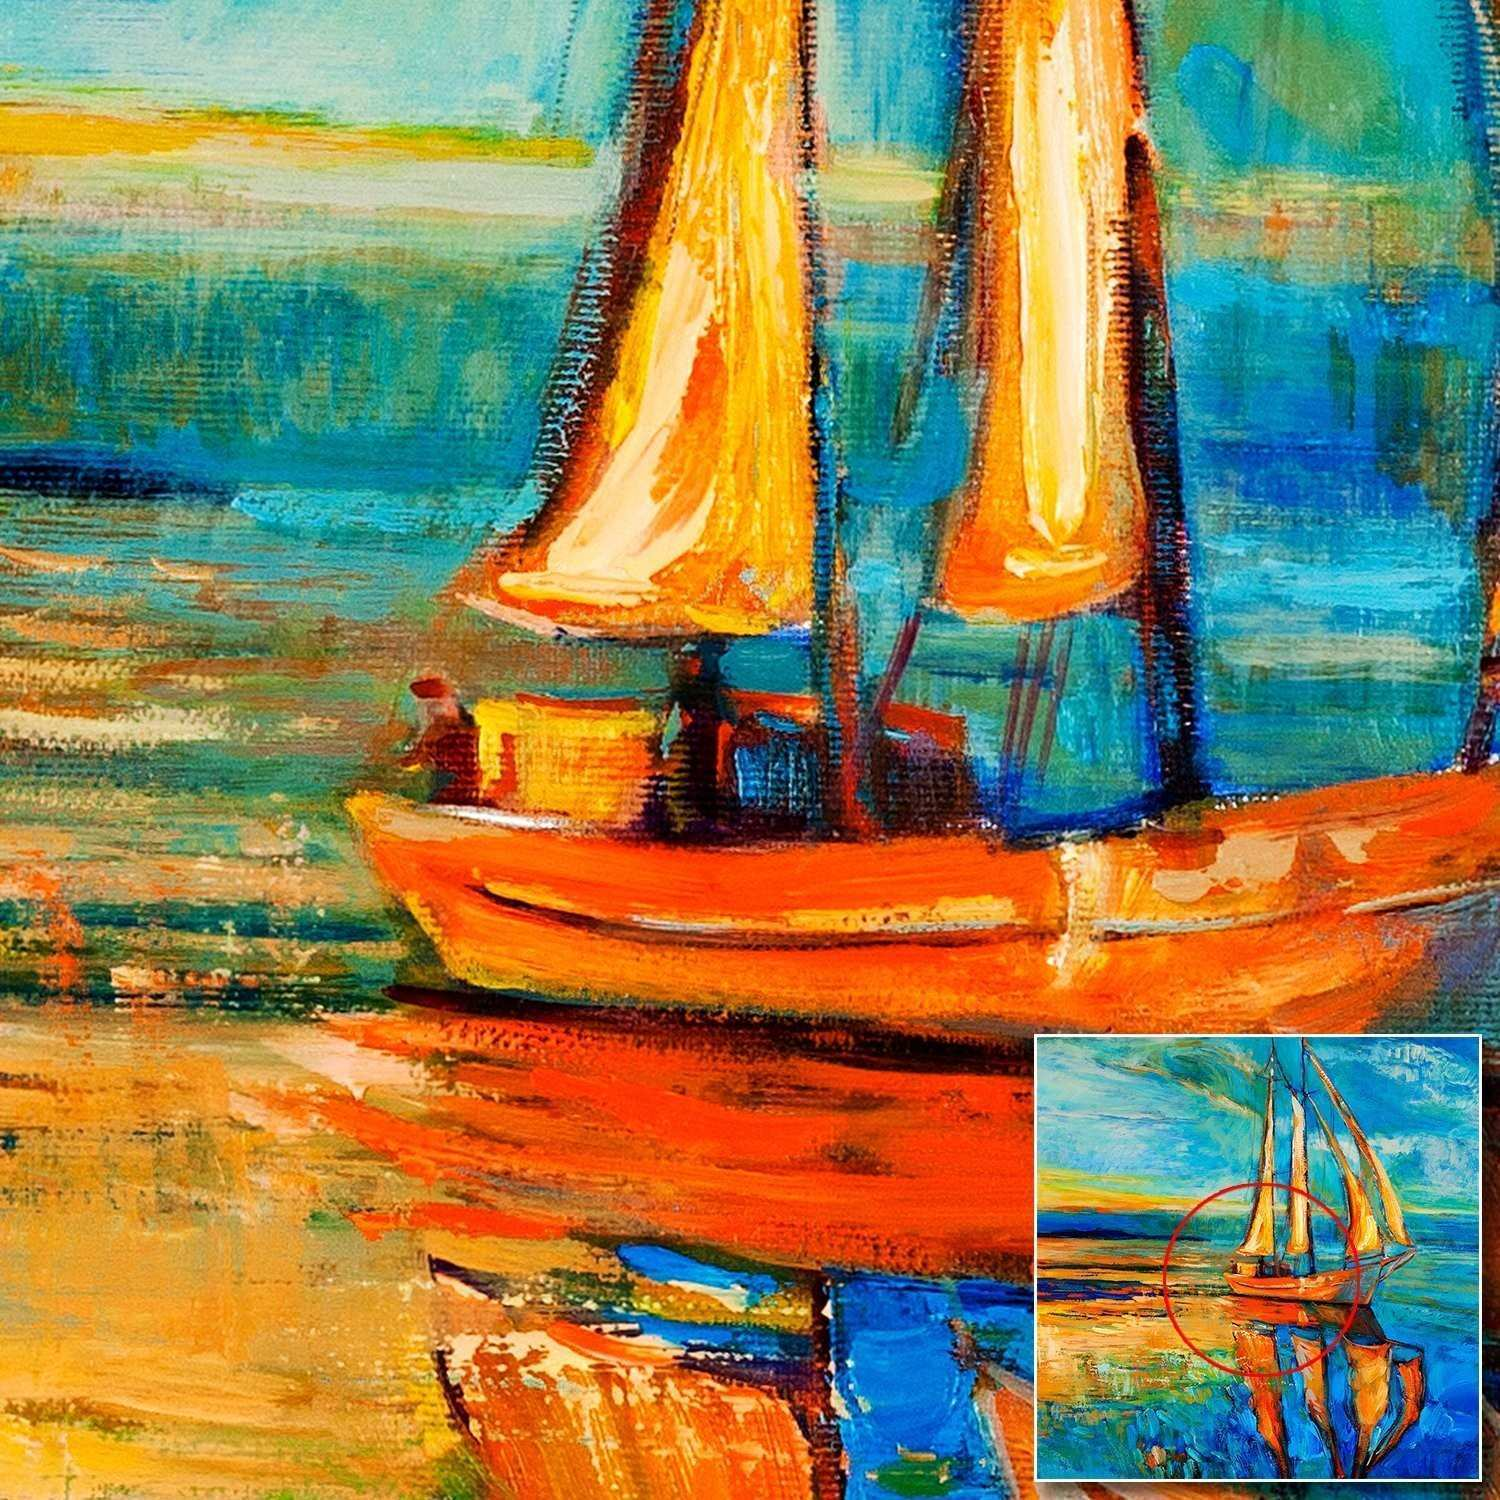 Blue Sailboat Abstract Oil Painting Prints Modern Home Wall Decor